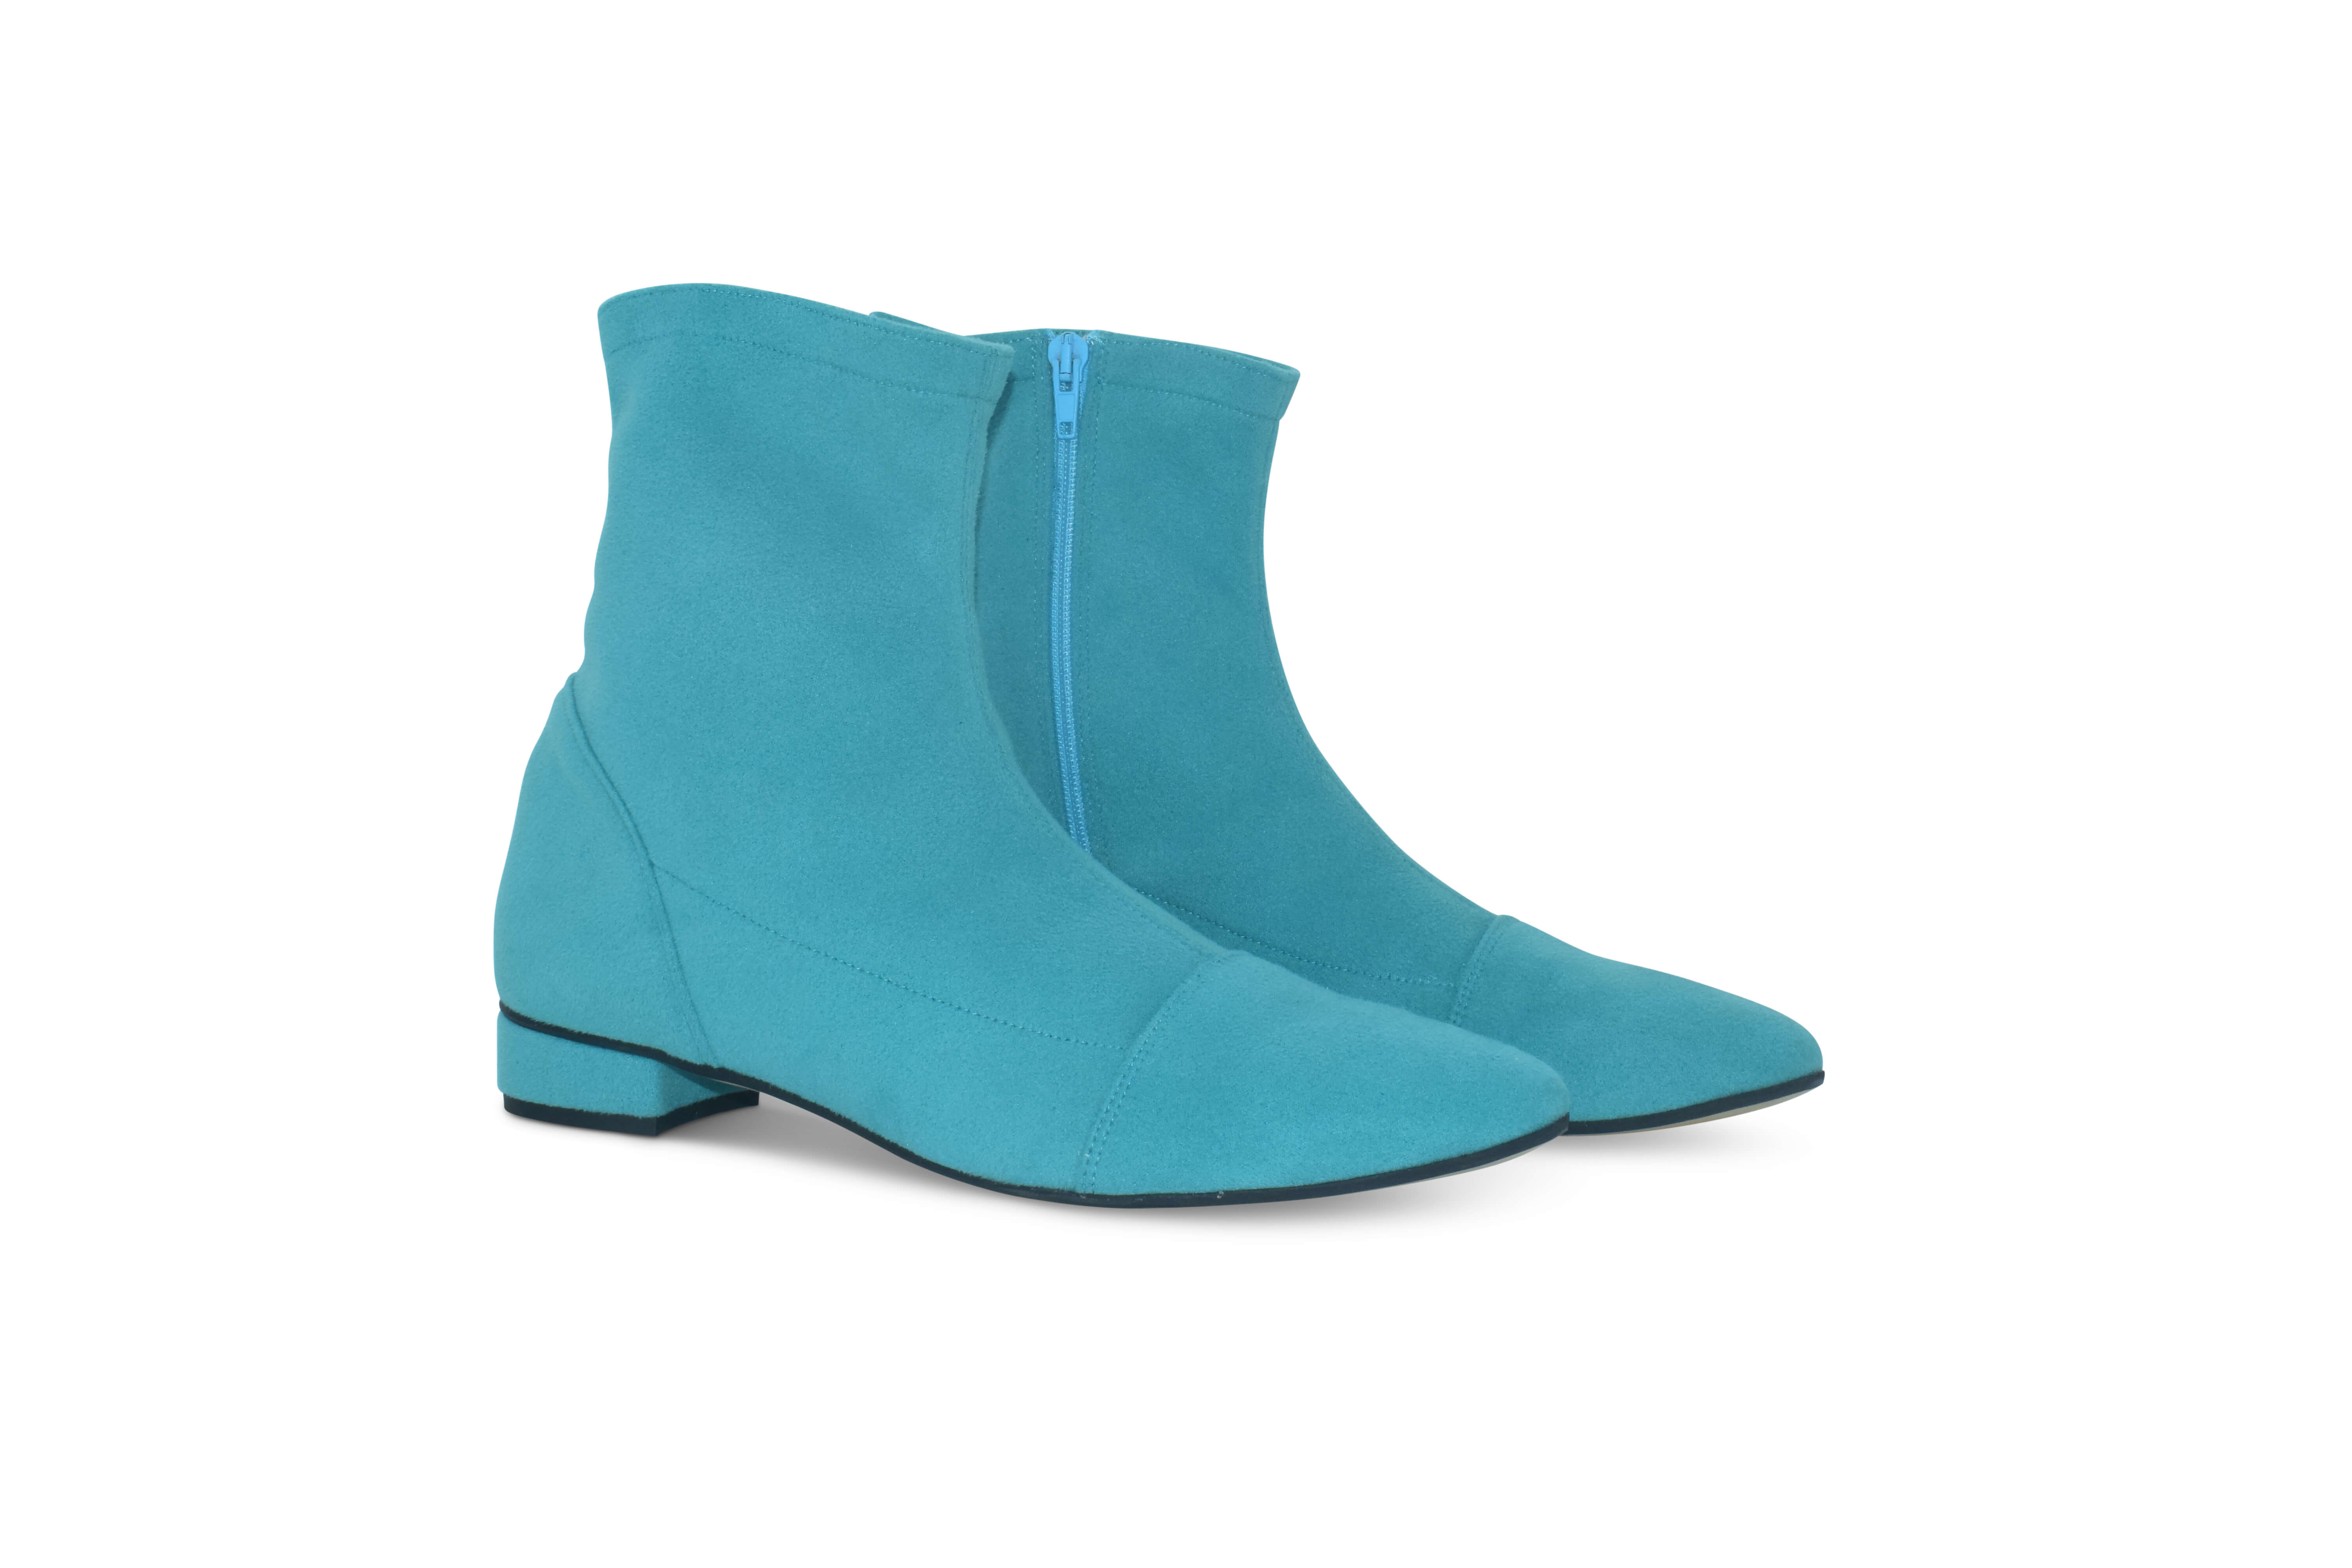 Luna sock boots with pointed toe - turquoise